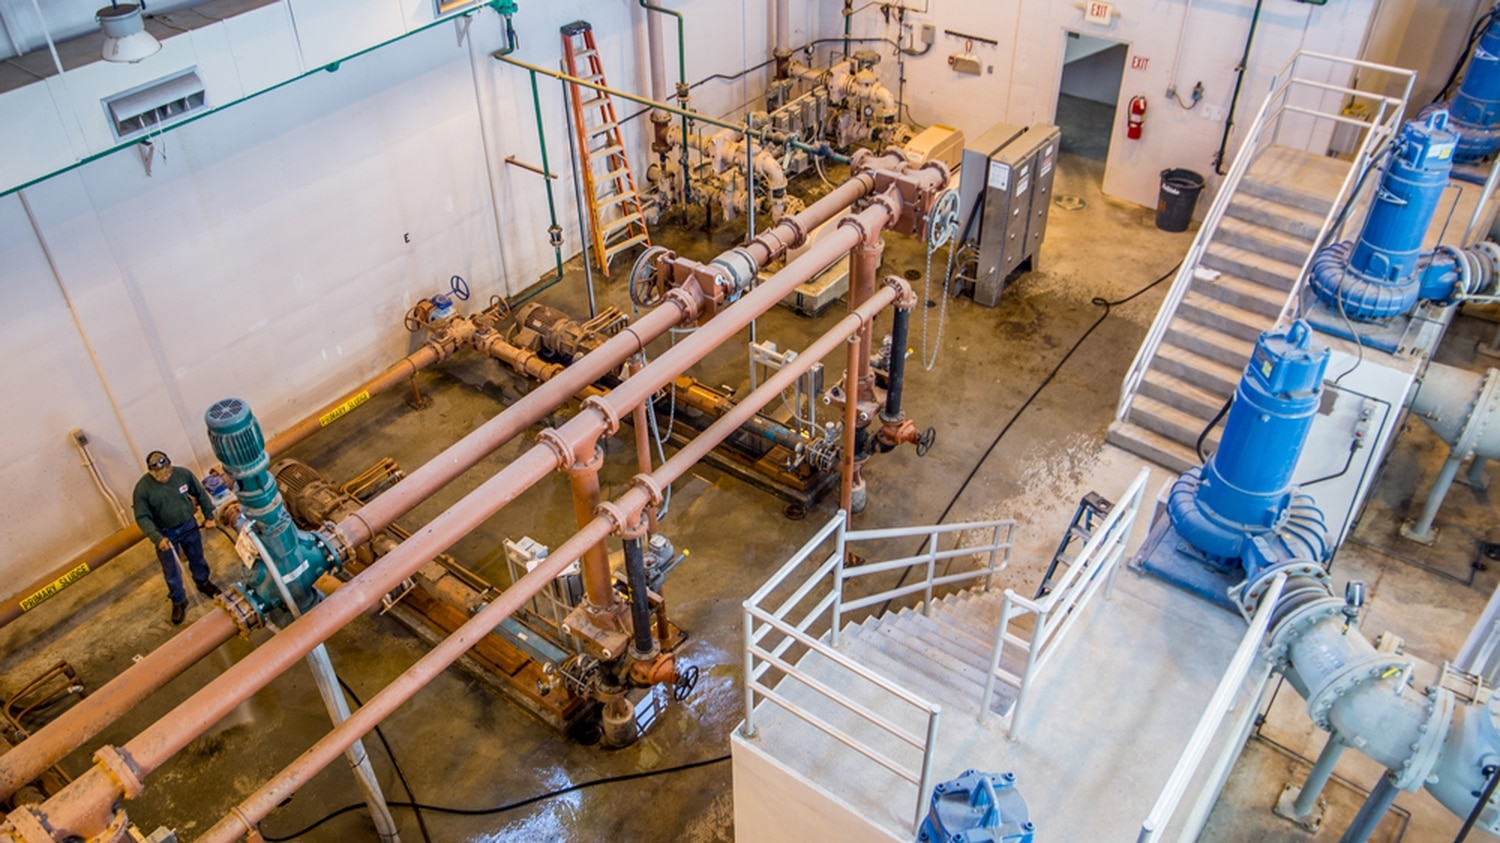 Wastewater gets treated at the Santa Fe Wastewater Treatment Plant. The city hopes to pipe this water back to the Rio Grande as part of a reuse strategy.